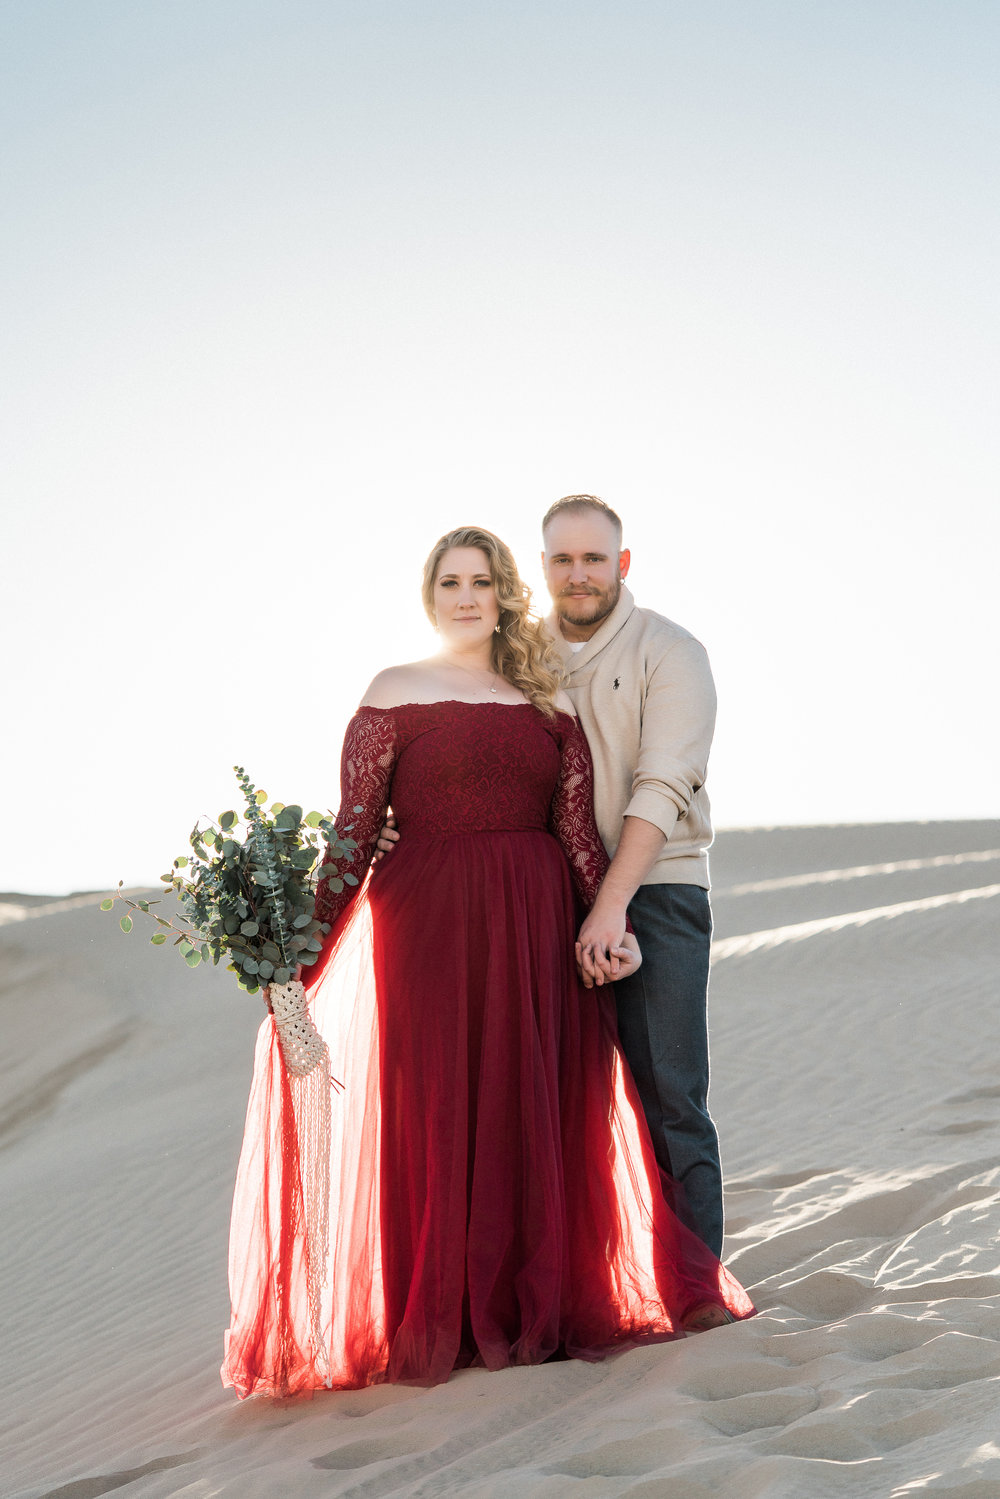 NewMexico-Sand-Dunes-Engagement-Carissa-and-Ben-1063.jpg